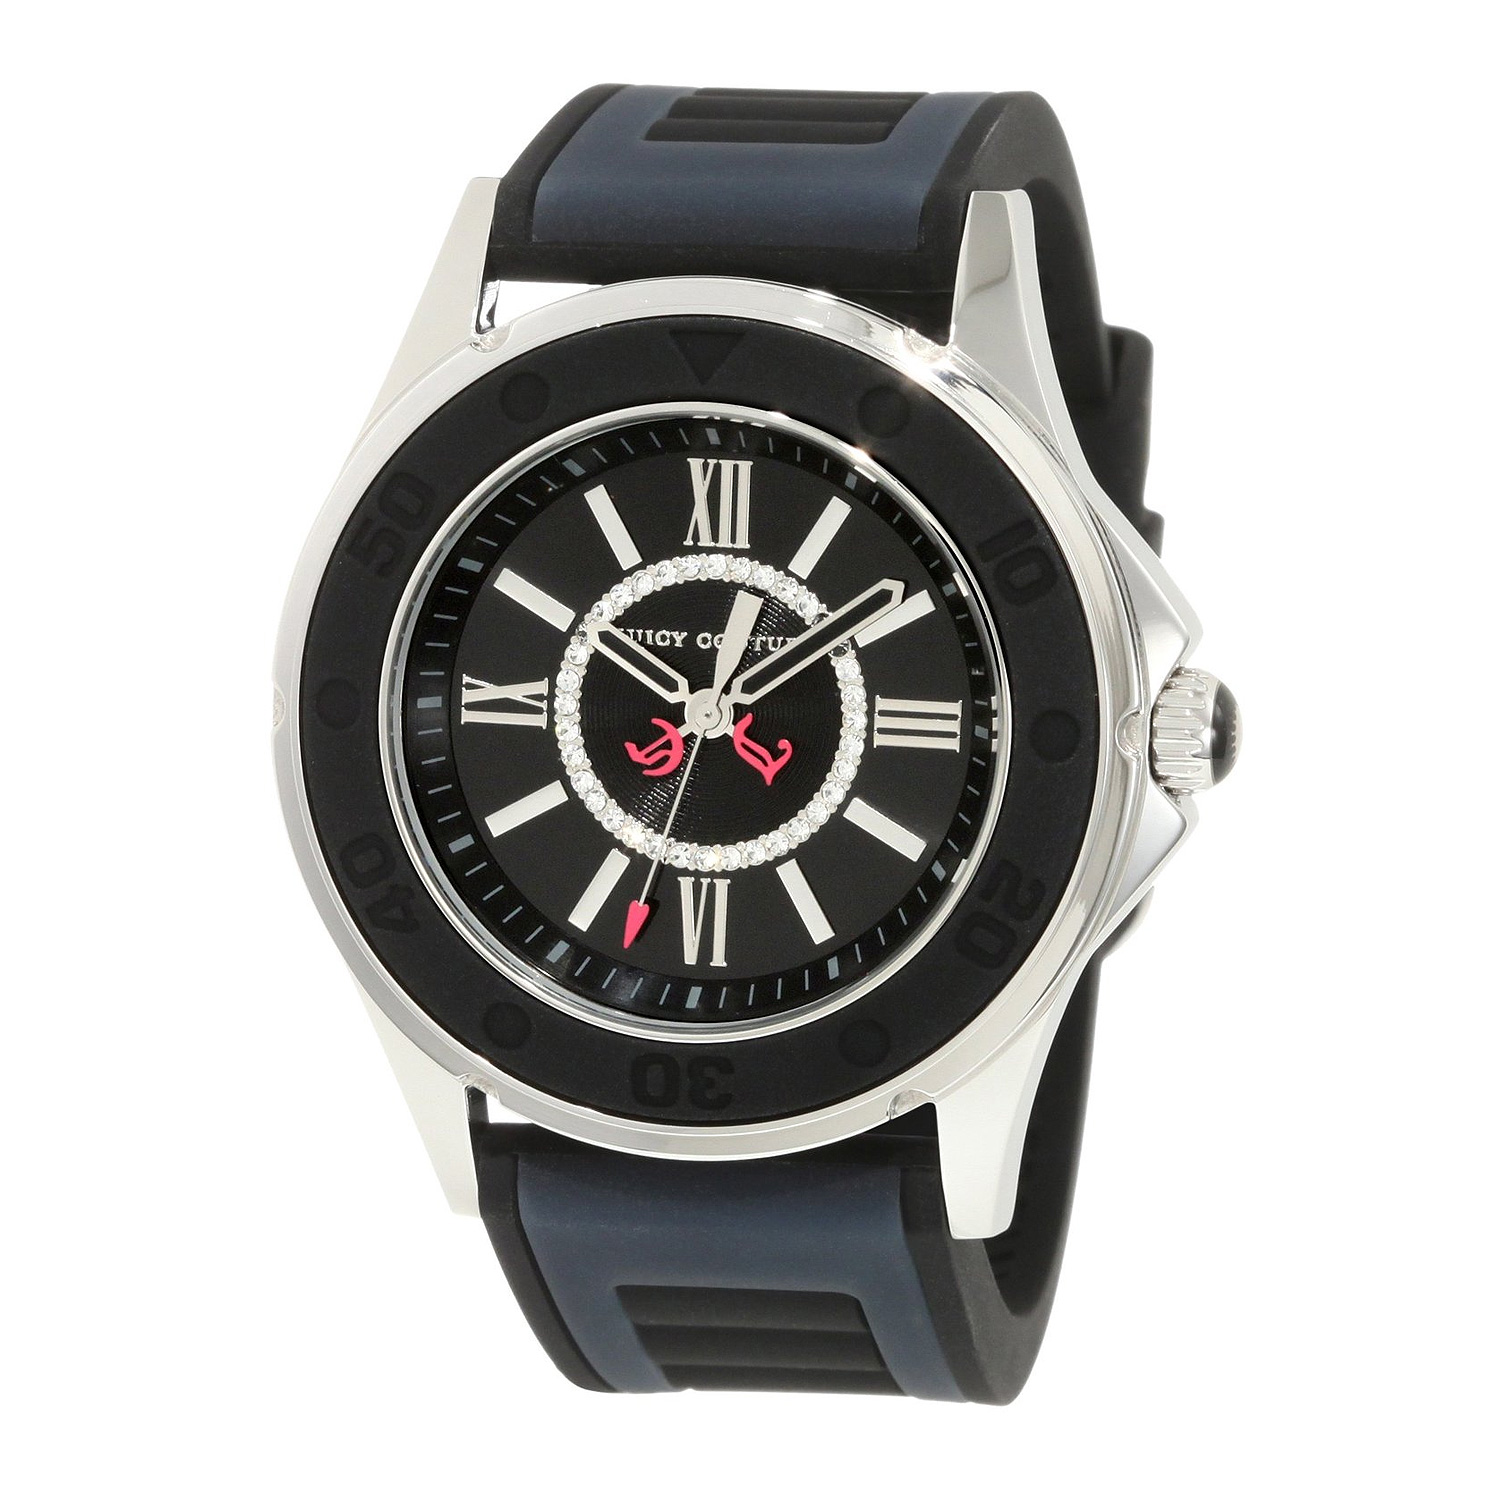 Orologio donna Juicy couture 1900875